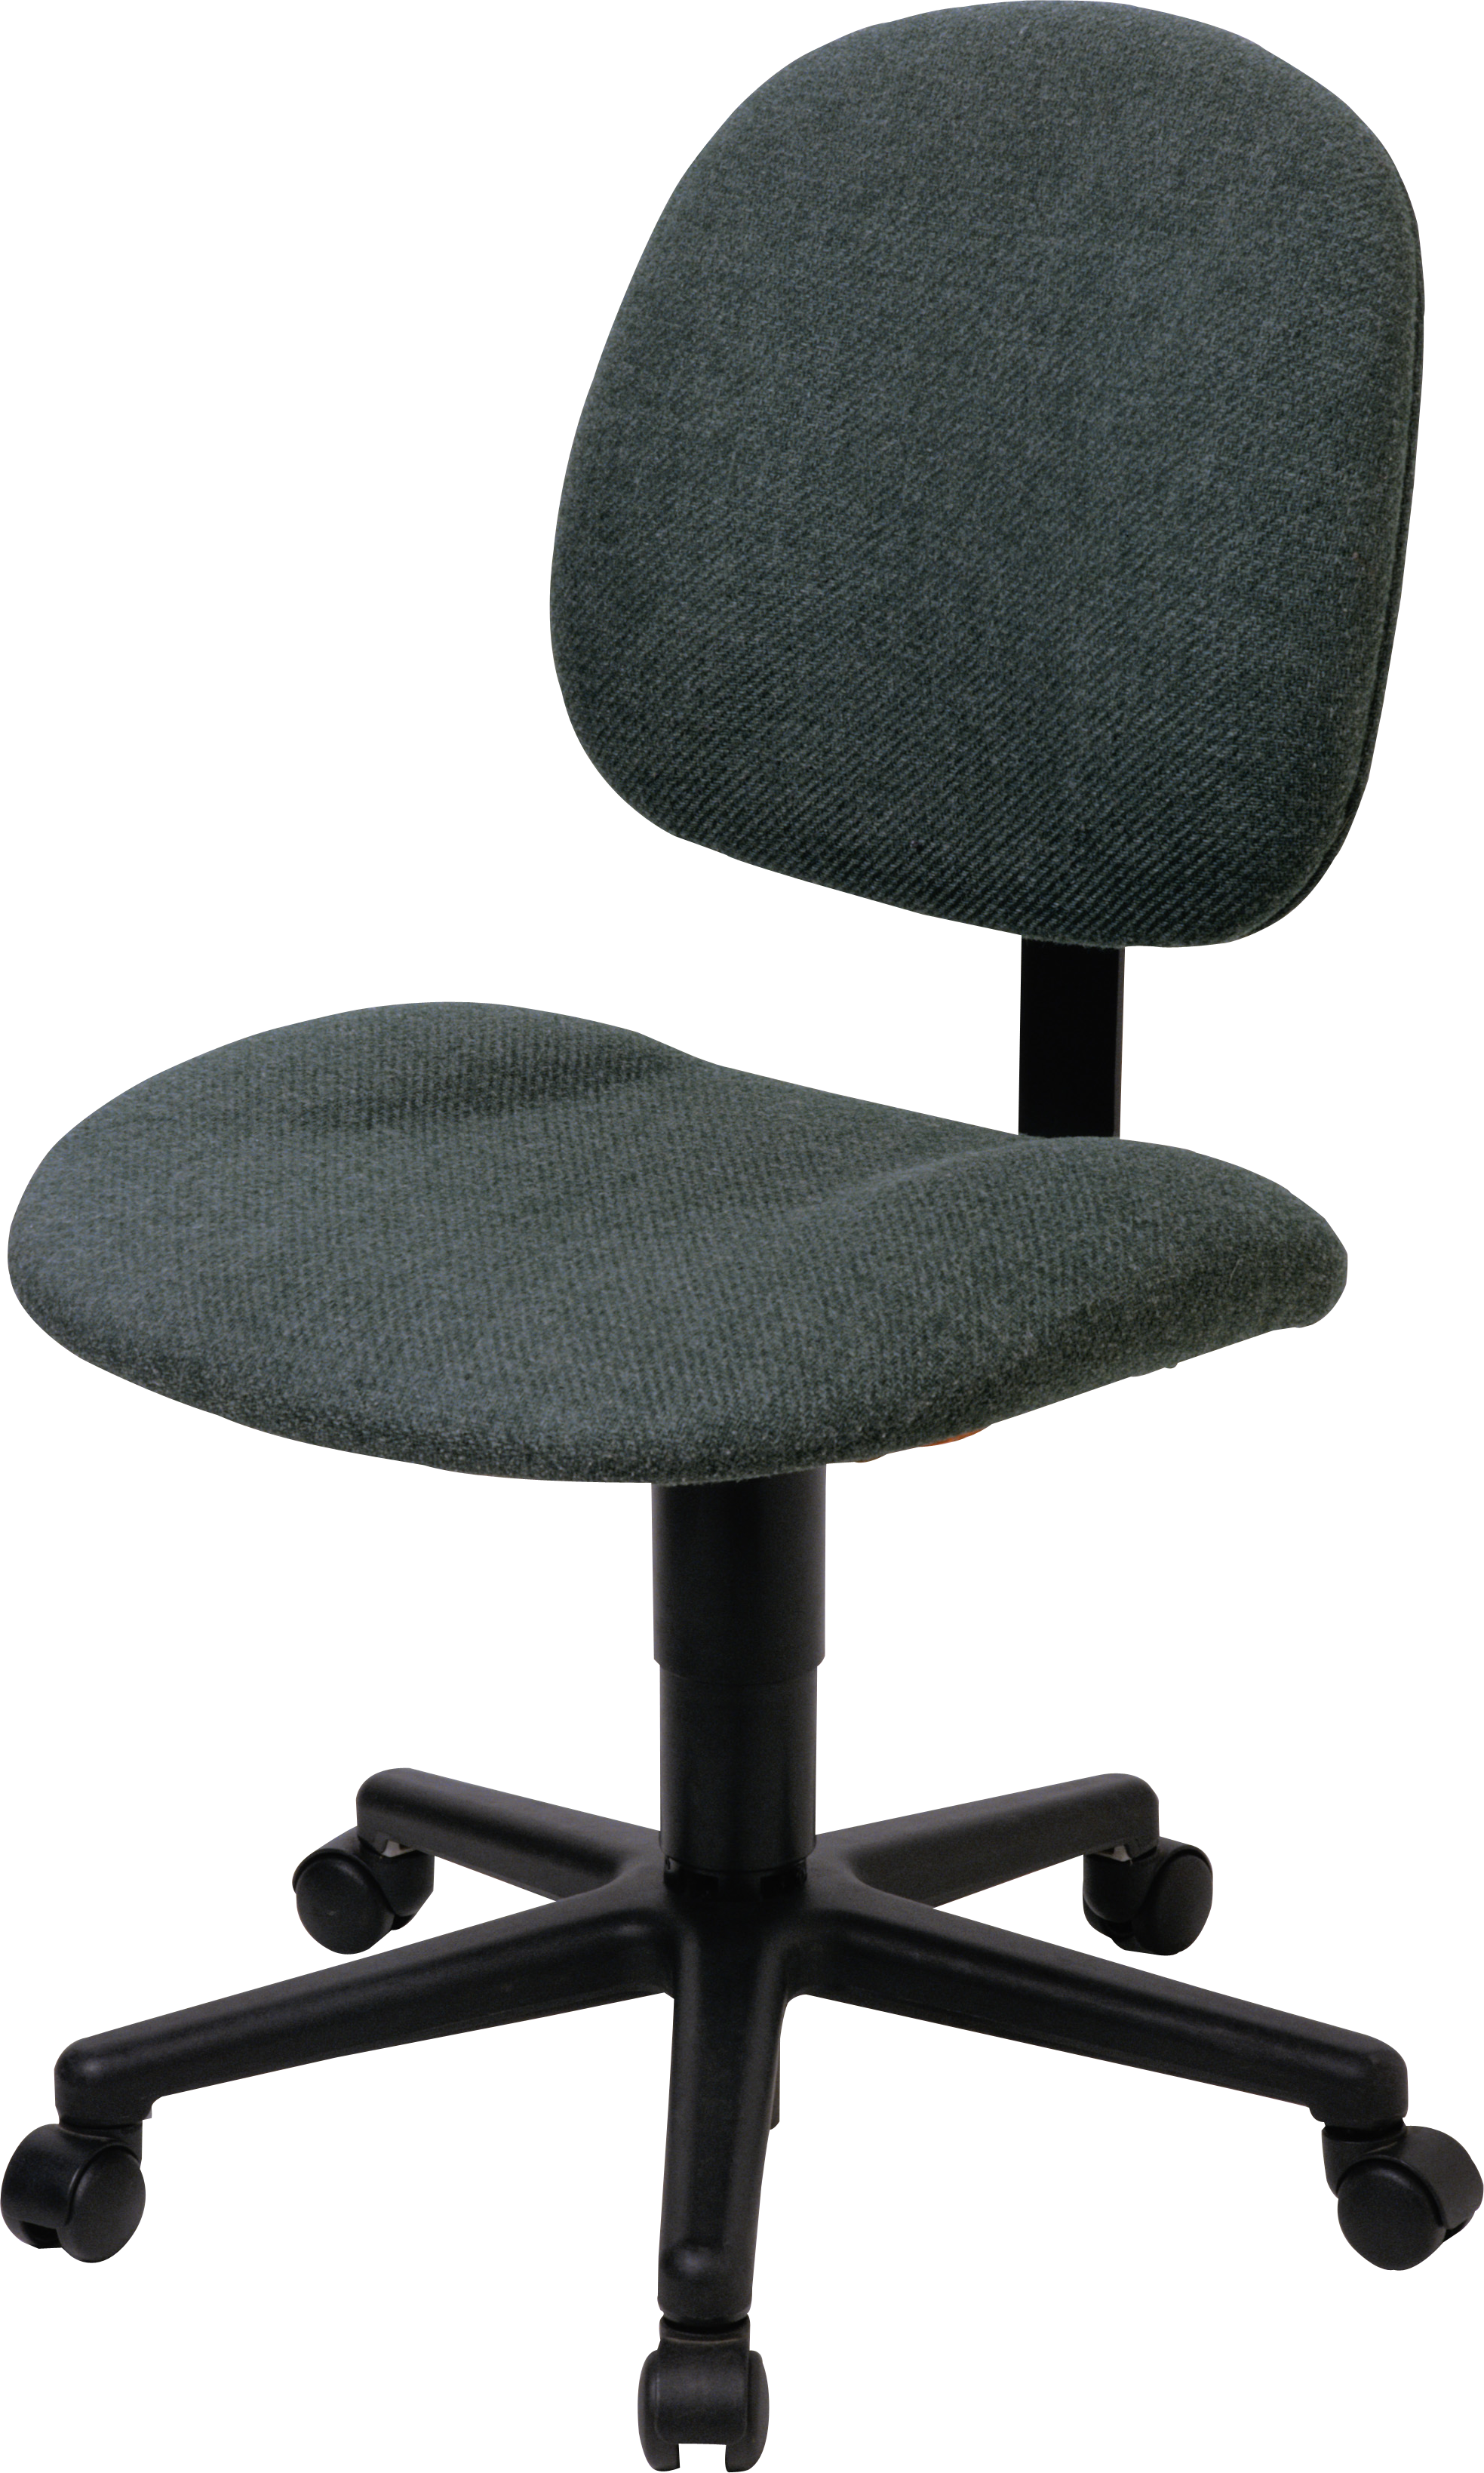 picture Icon web icons png. Chair clipart transparent background.